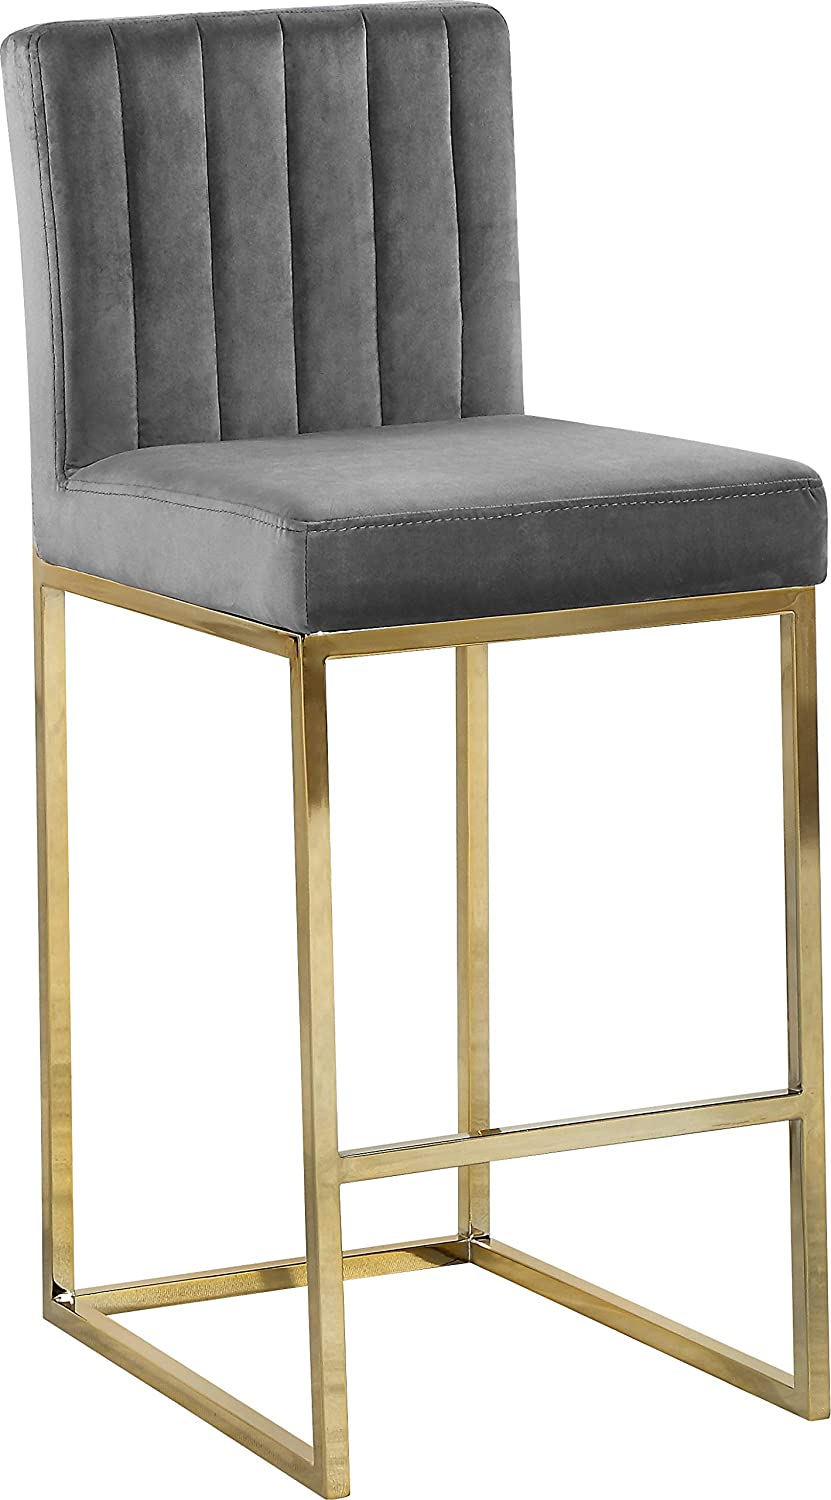 Meridian Furniture Giselle Collection Modern Contemporary Grey Velvet Upholstered Counter Stool with Polished Gold Metal Base, 16 W x 19 D x 37.5 H,